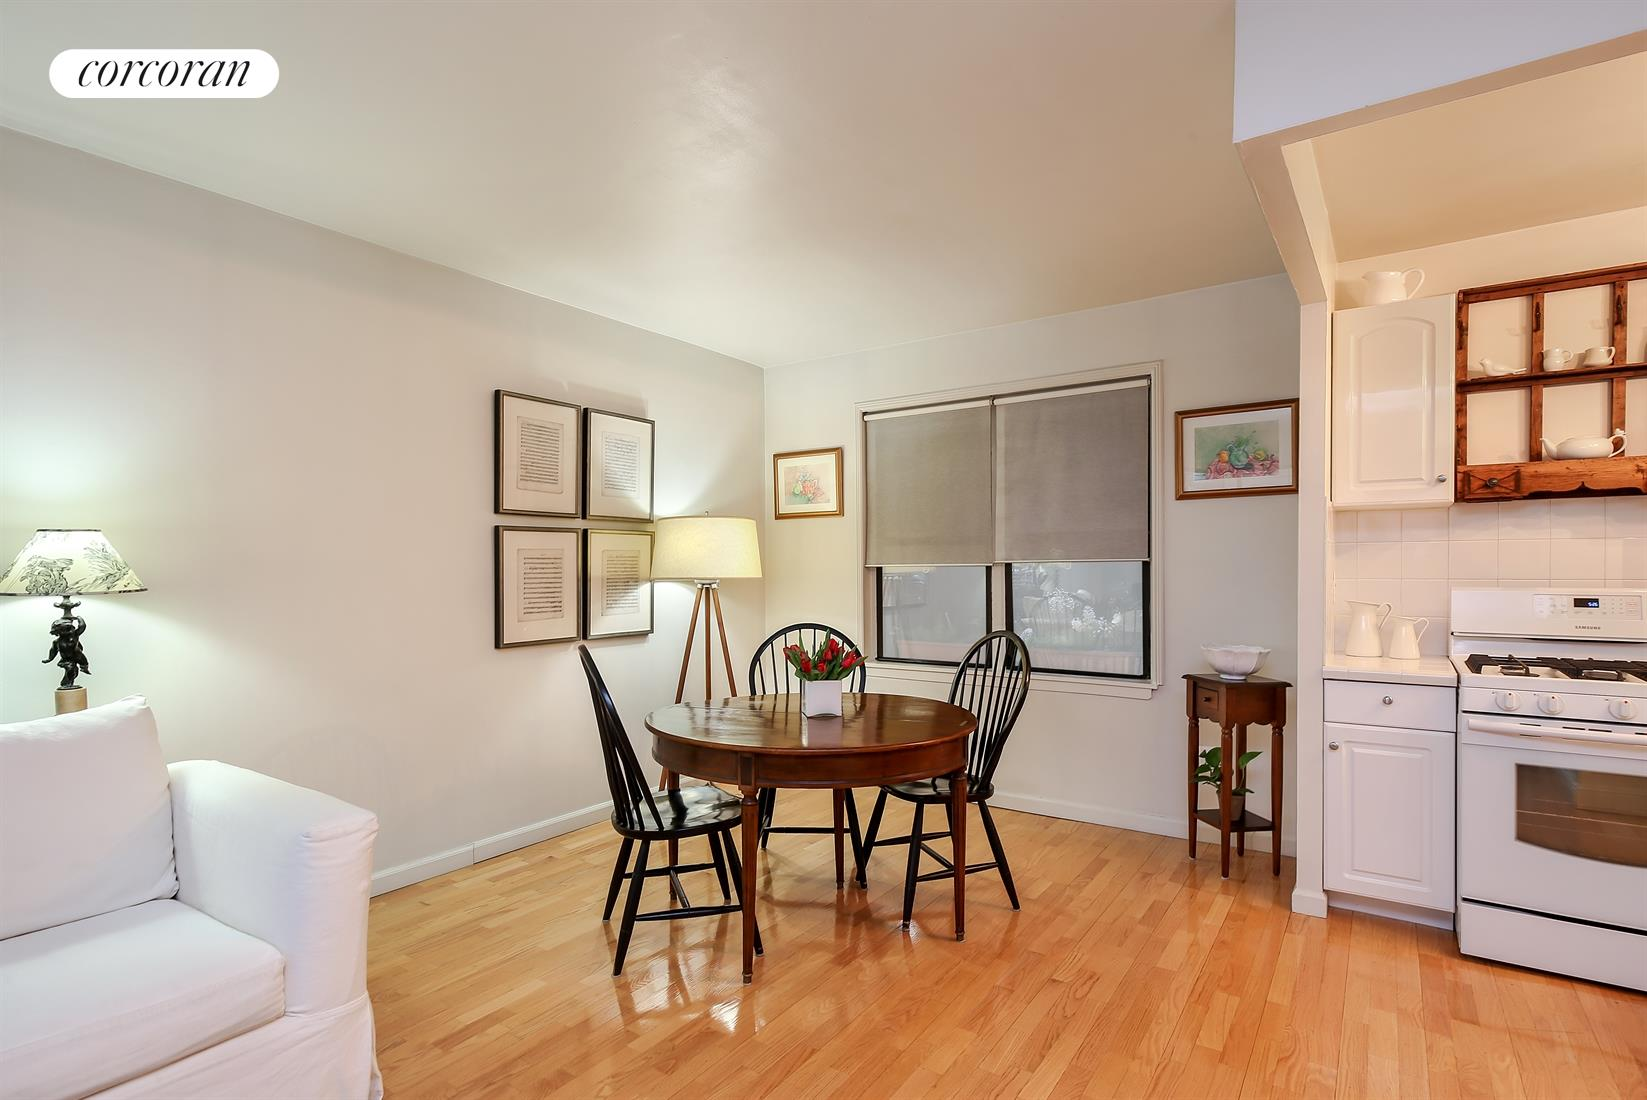 300 East 95th Street, 2B, Living Room with Built Ins